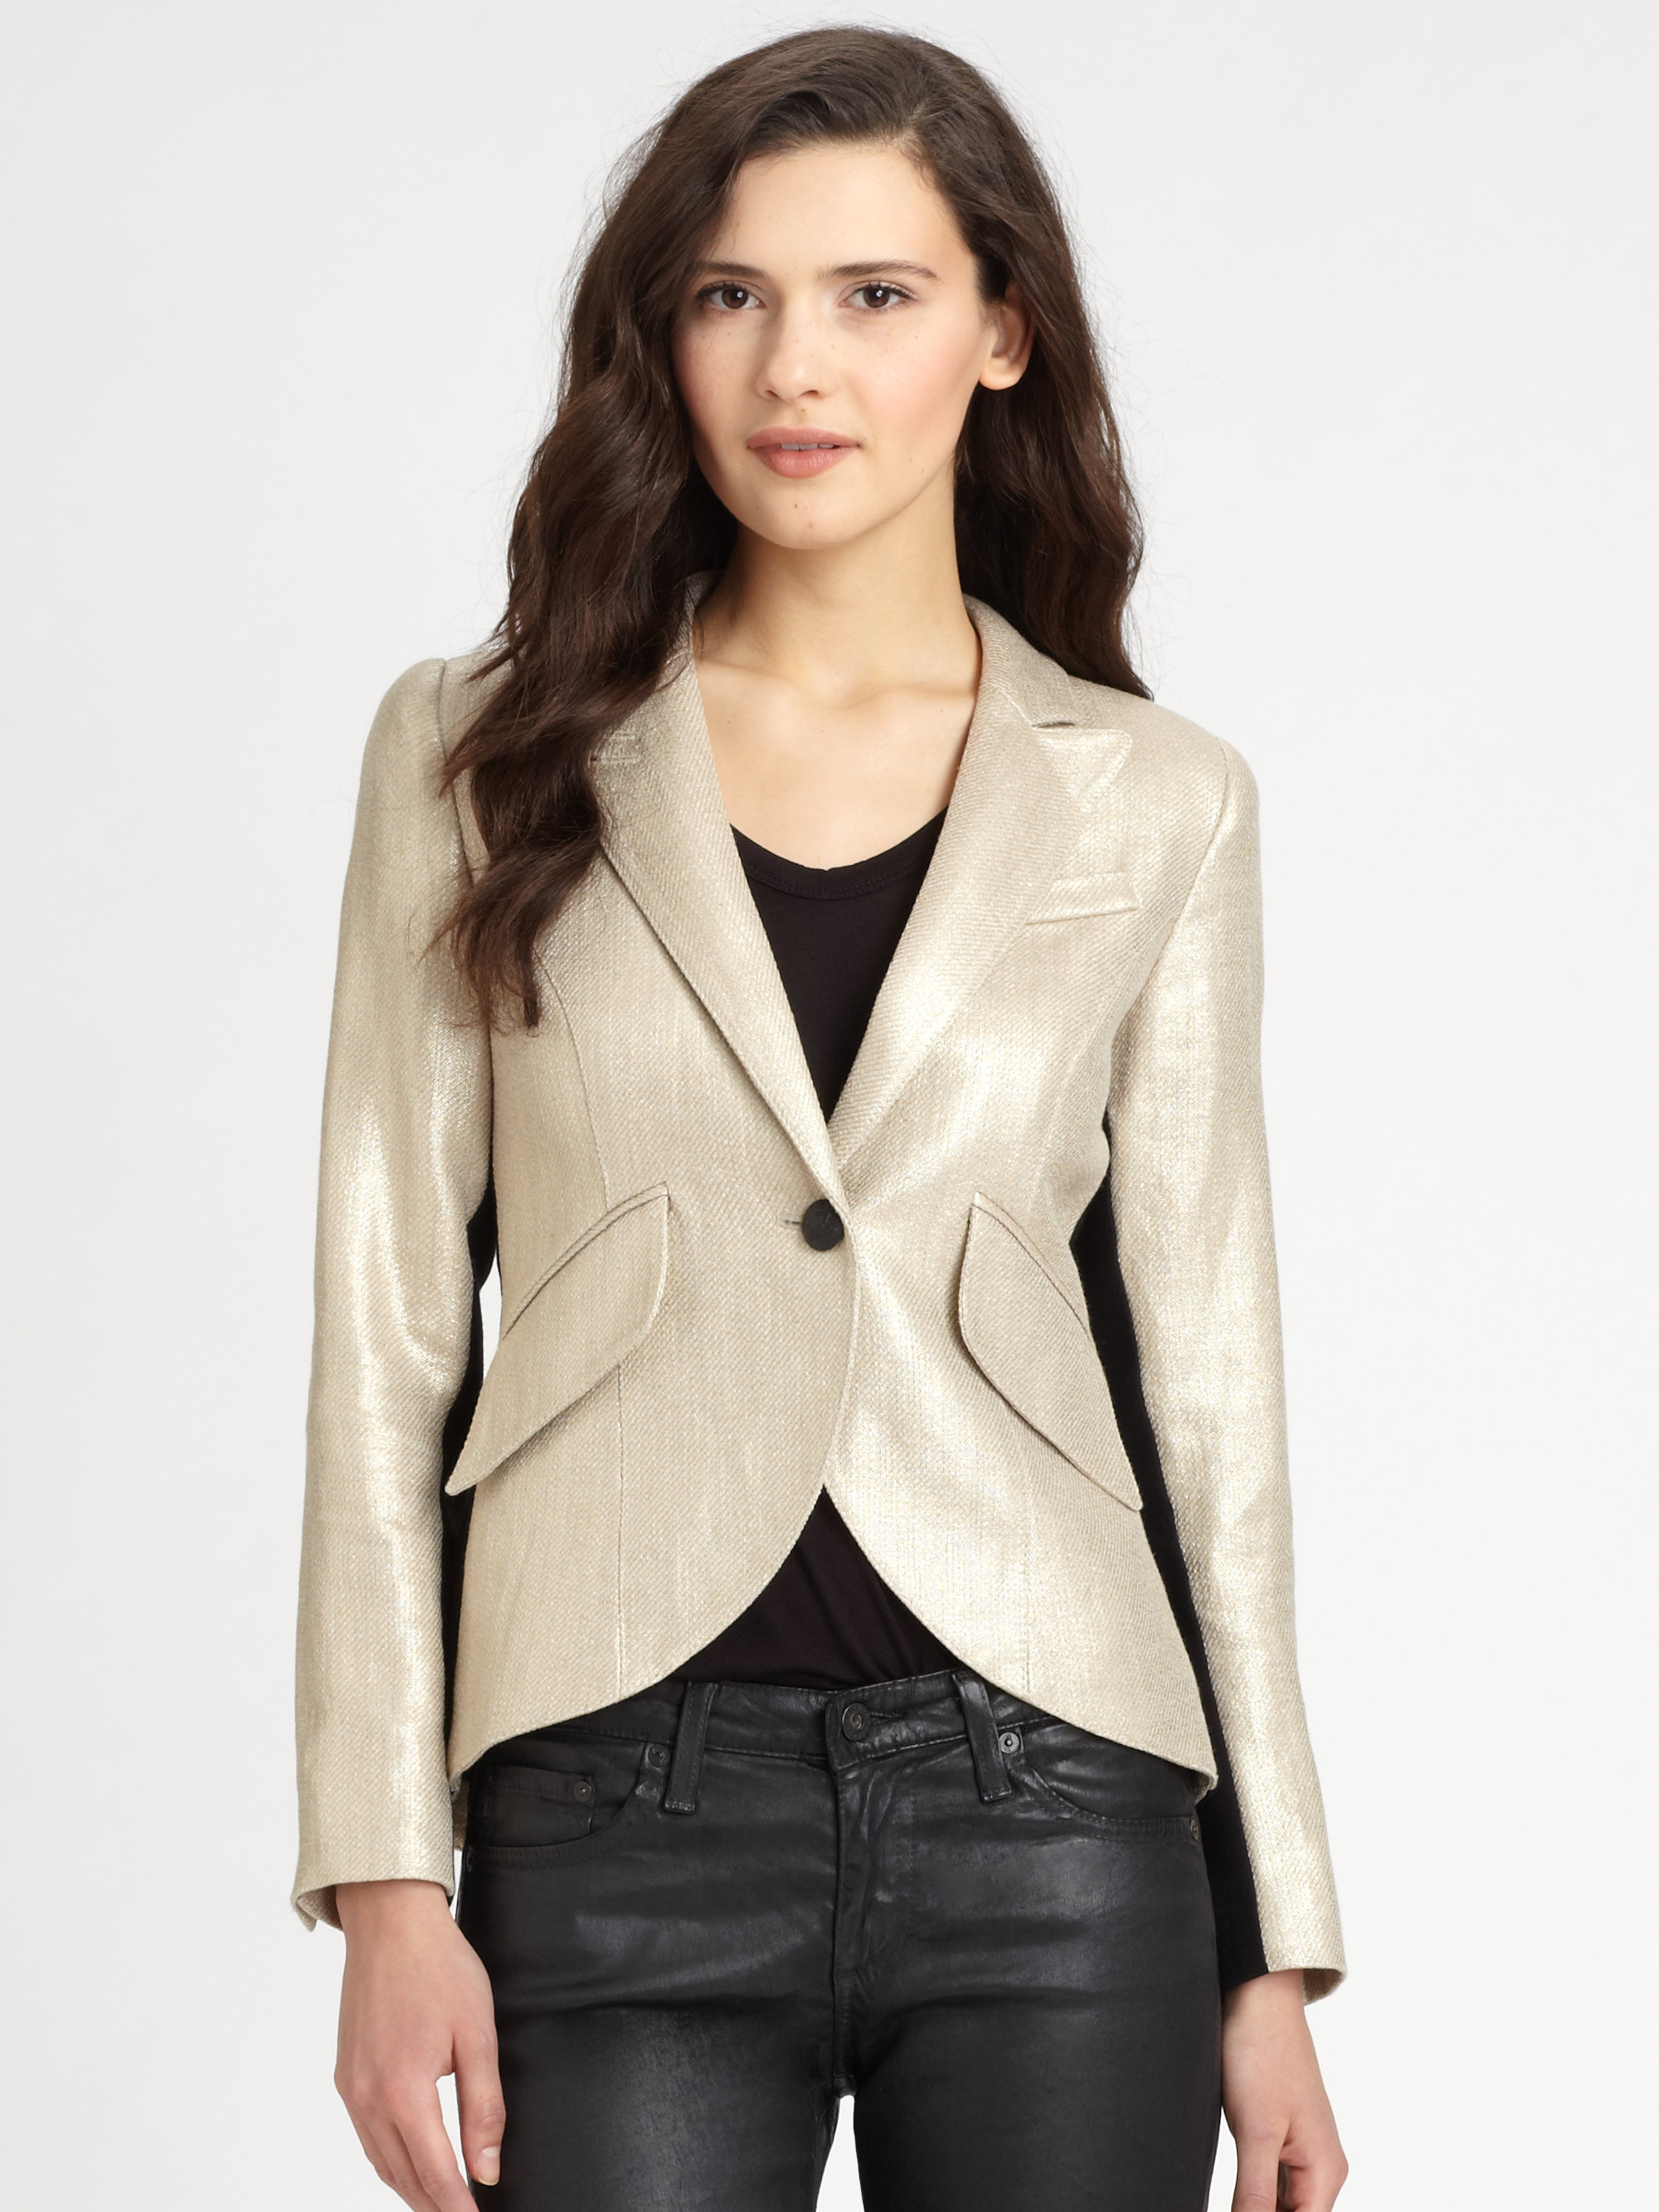 Smythe Tuxedostriped Metallic Blazer In Gold Metallic Lyst